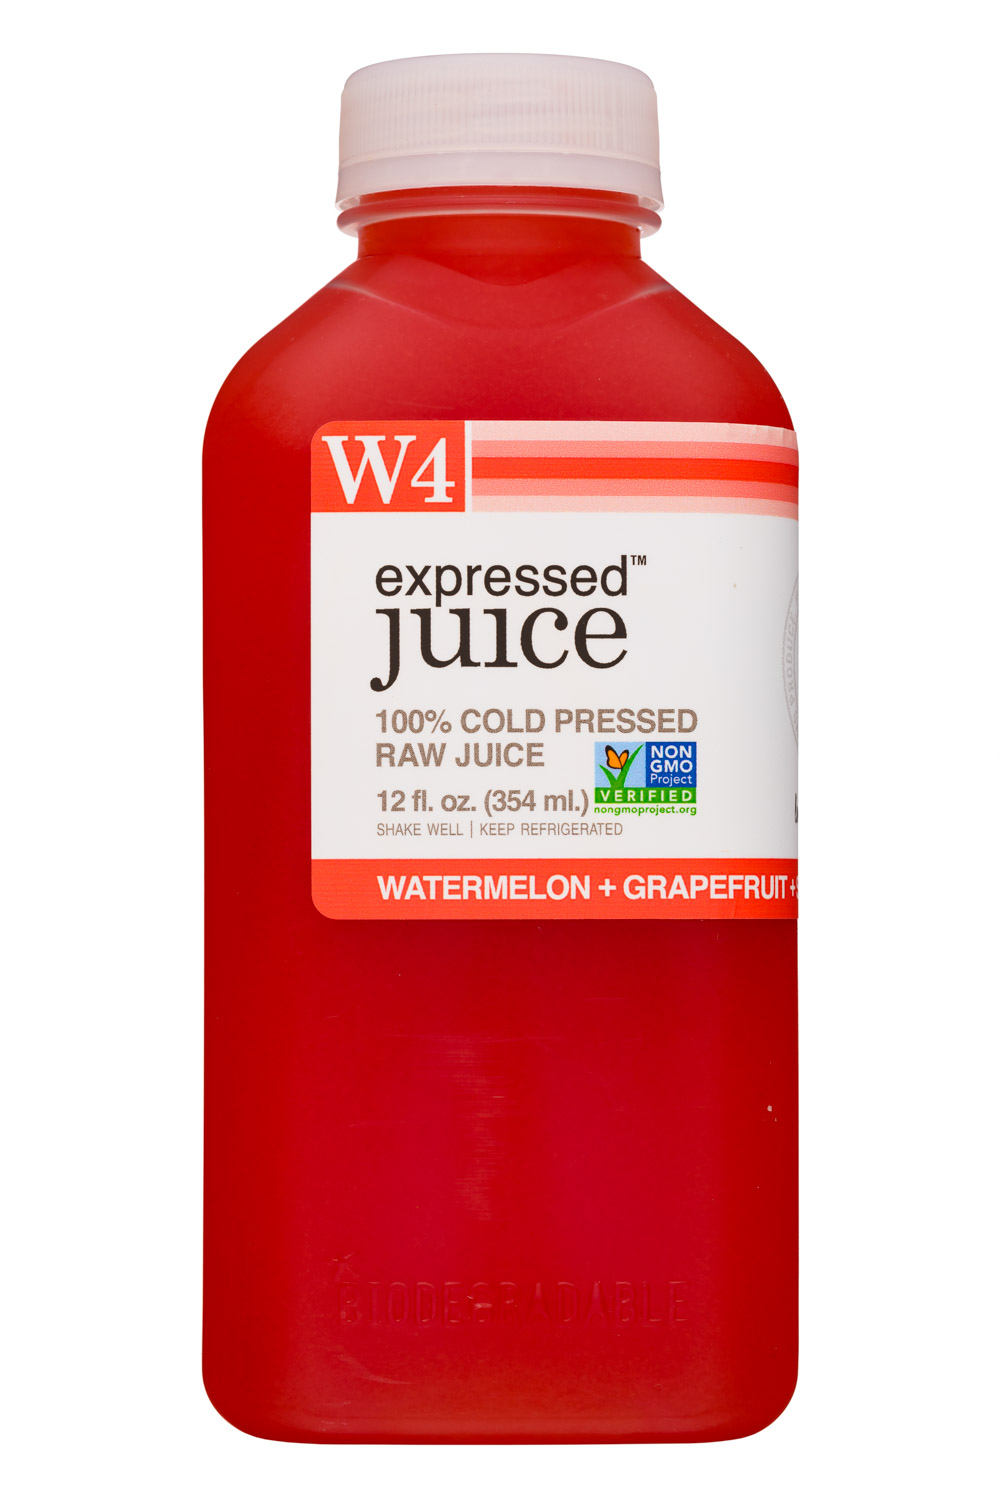 W4 - Watermelon + Grapefruit + Strawberry + Lime